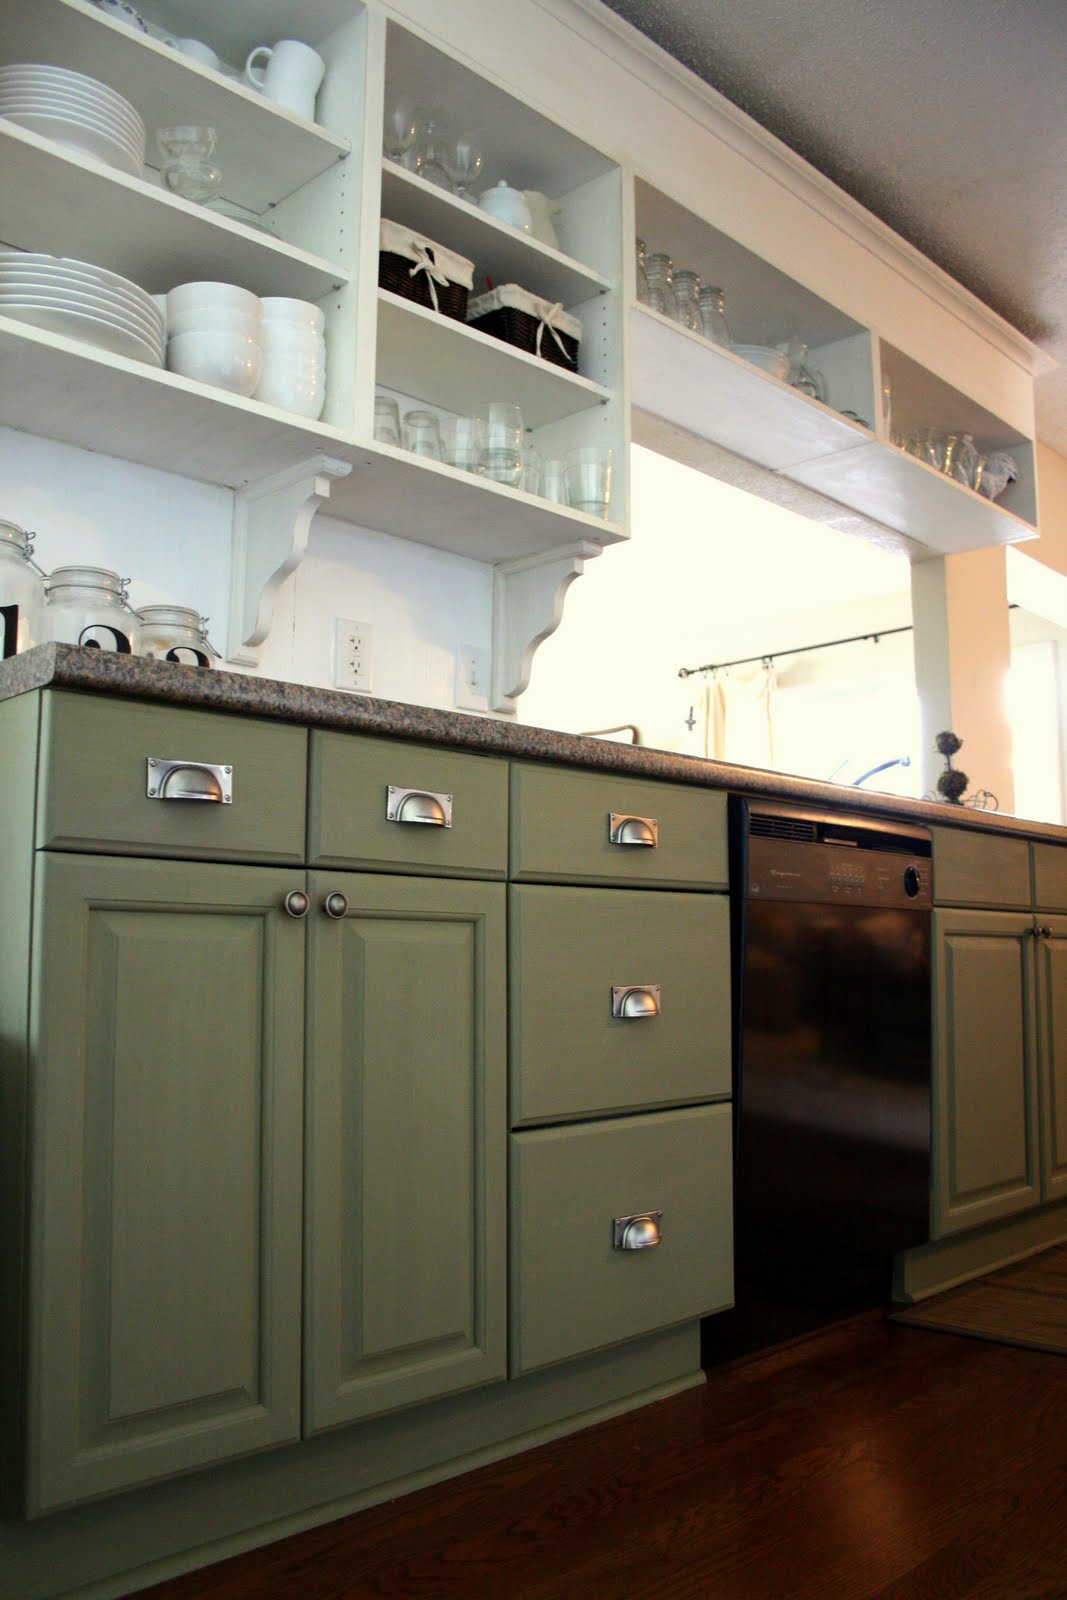 The virginia house painting my cabinets with caromal for Grey green kitchen cabinets